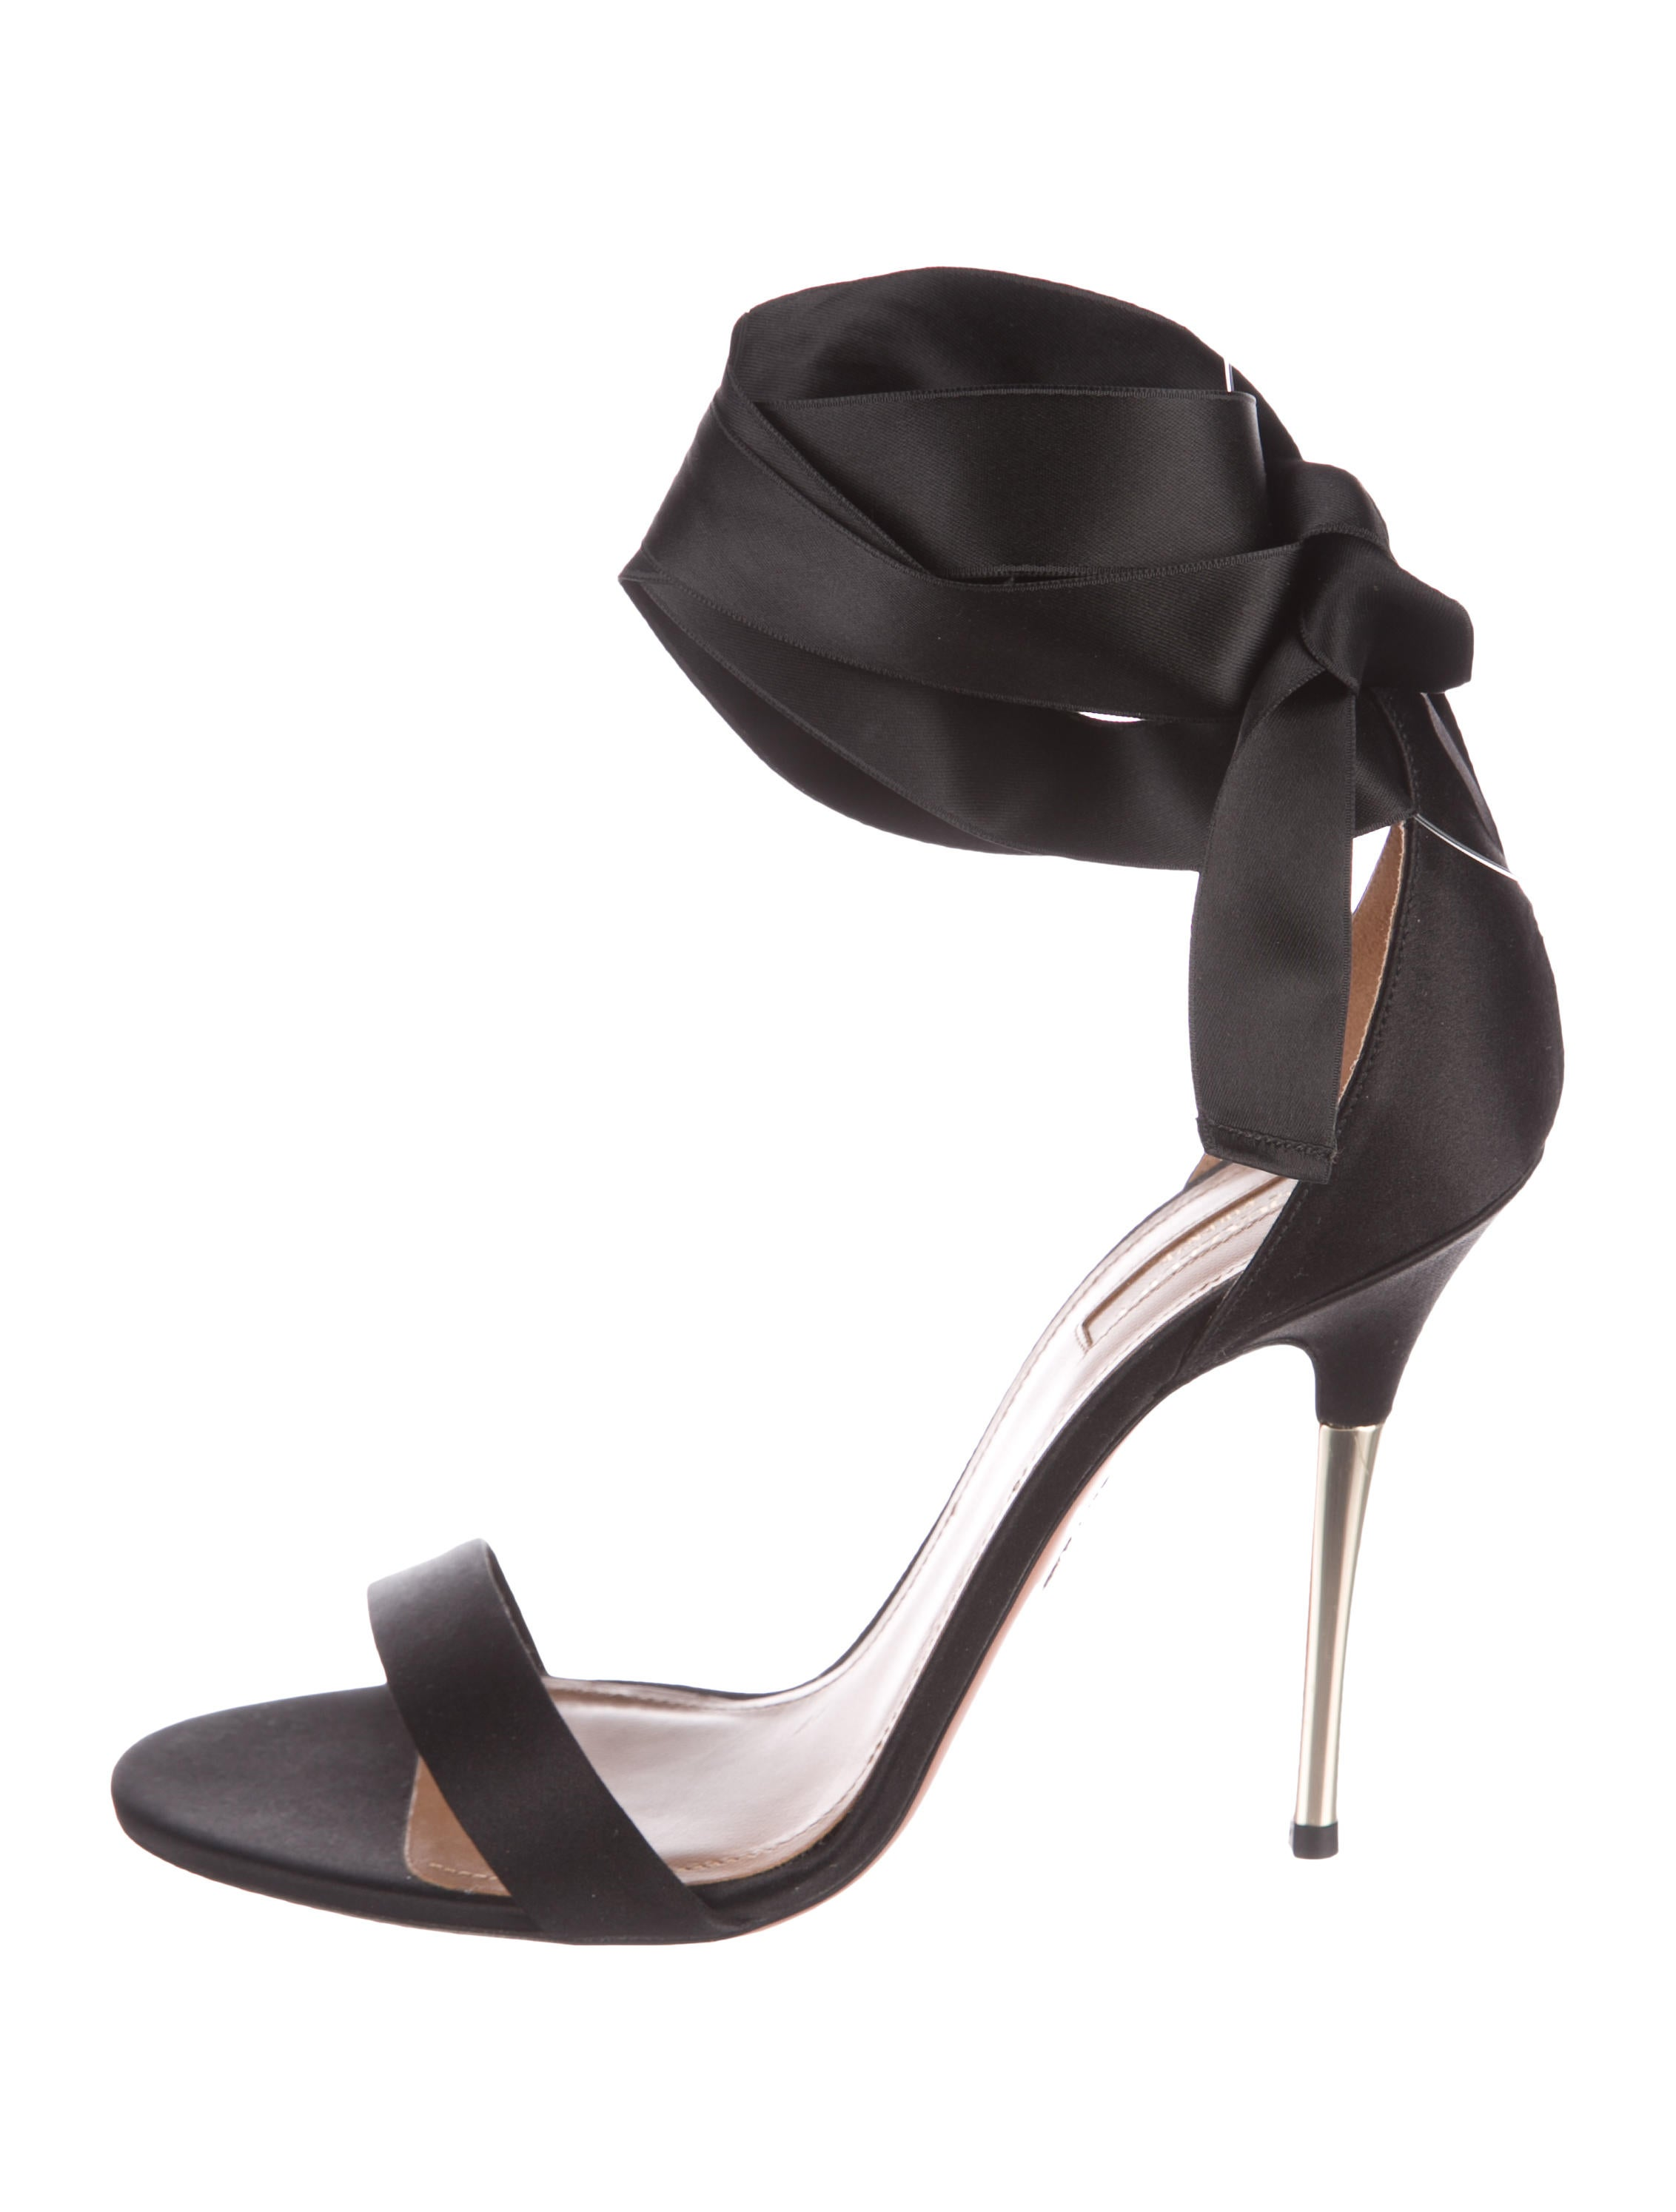 Aquazzura Satin Ribbon-Accented Sandals cheap USA stockist free shipping best wholesale cheap sale largest supplier dySzMc44VN